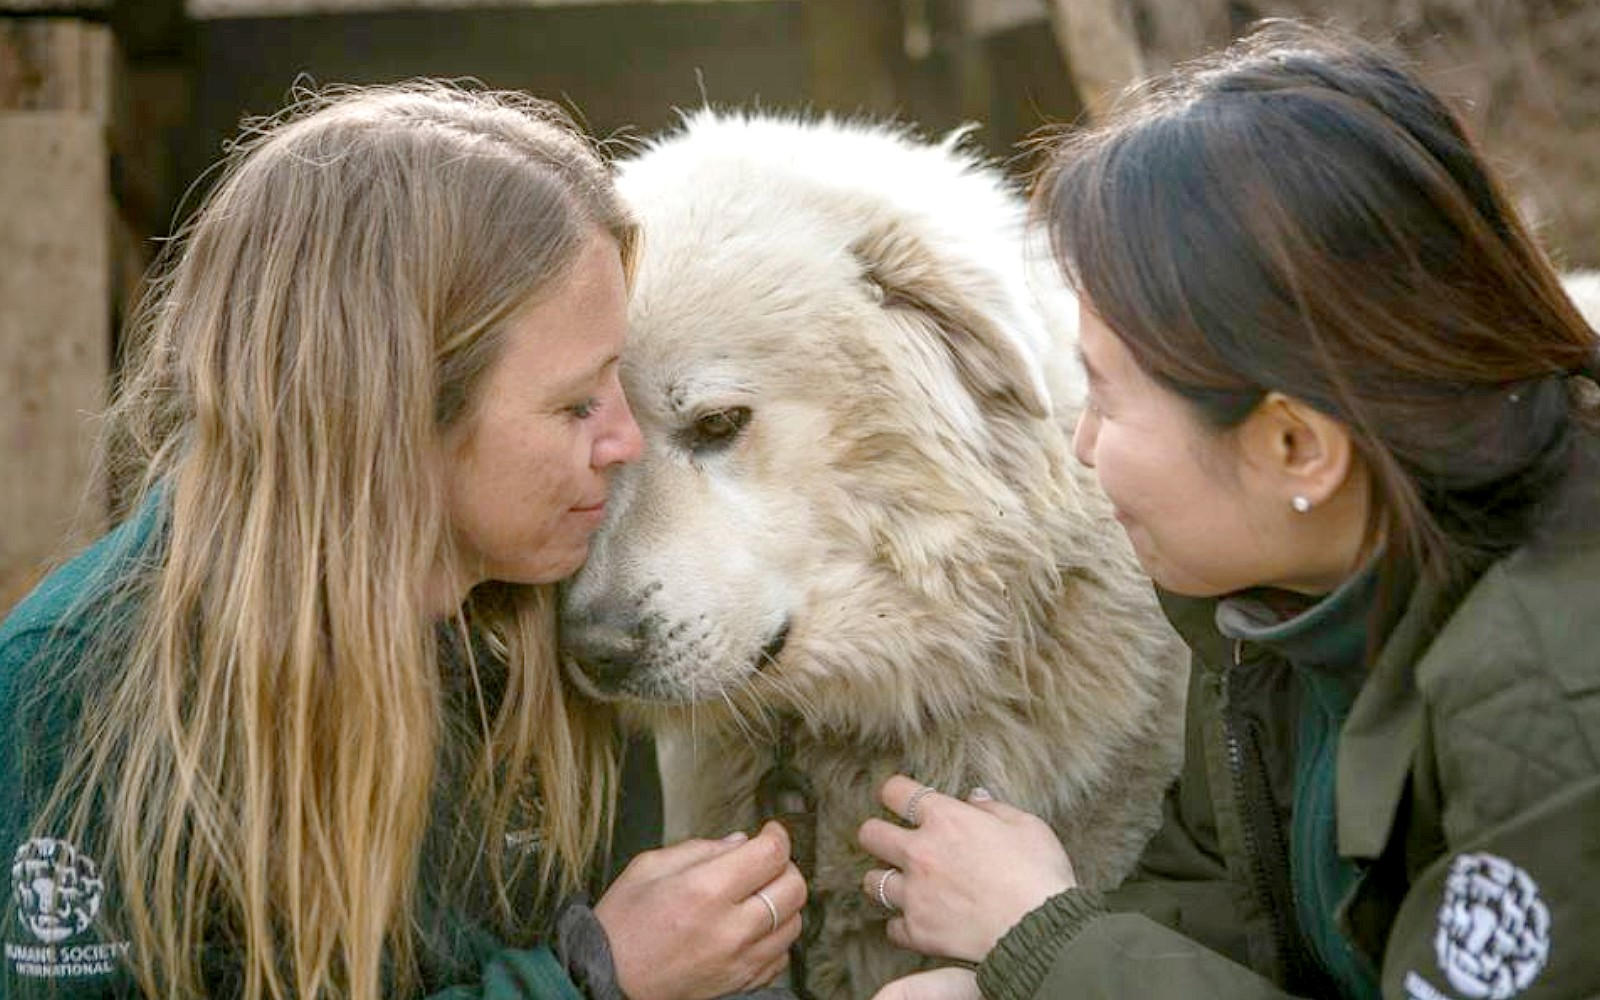 Photos Capture The Touching Moment 80 Dogs Rescued From A Meat Farm Realize They're Safe